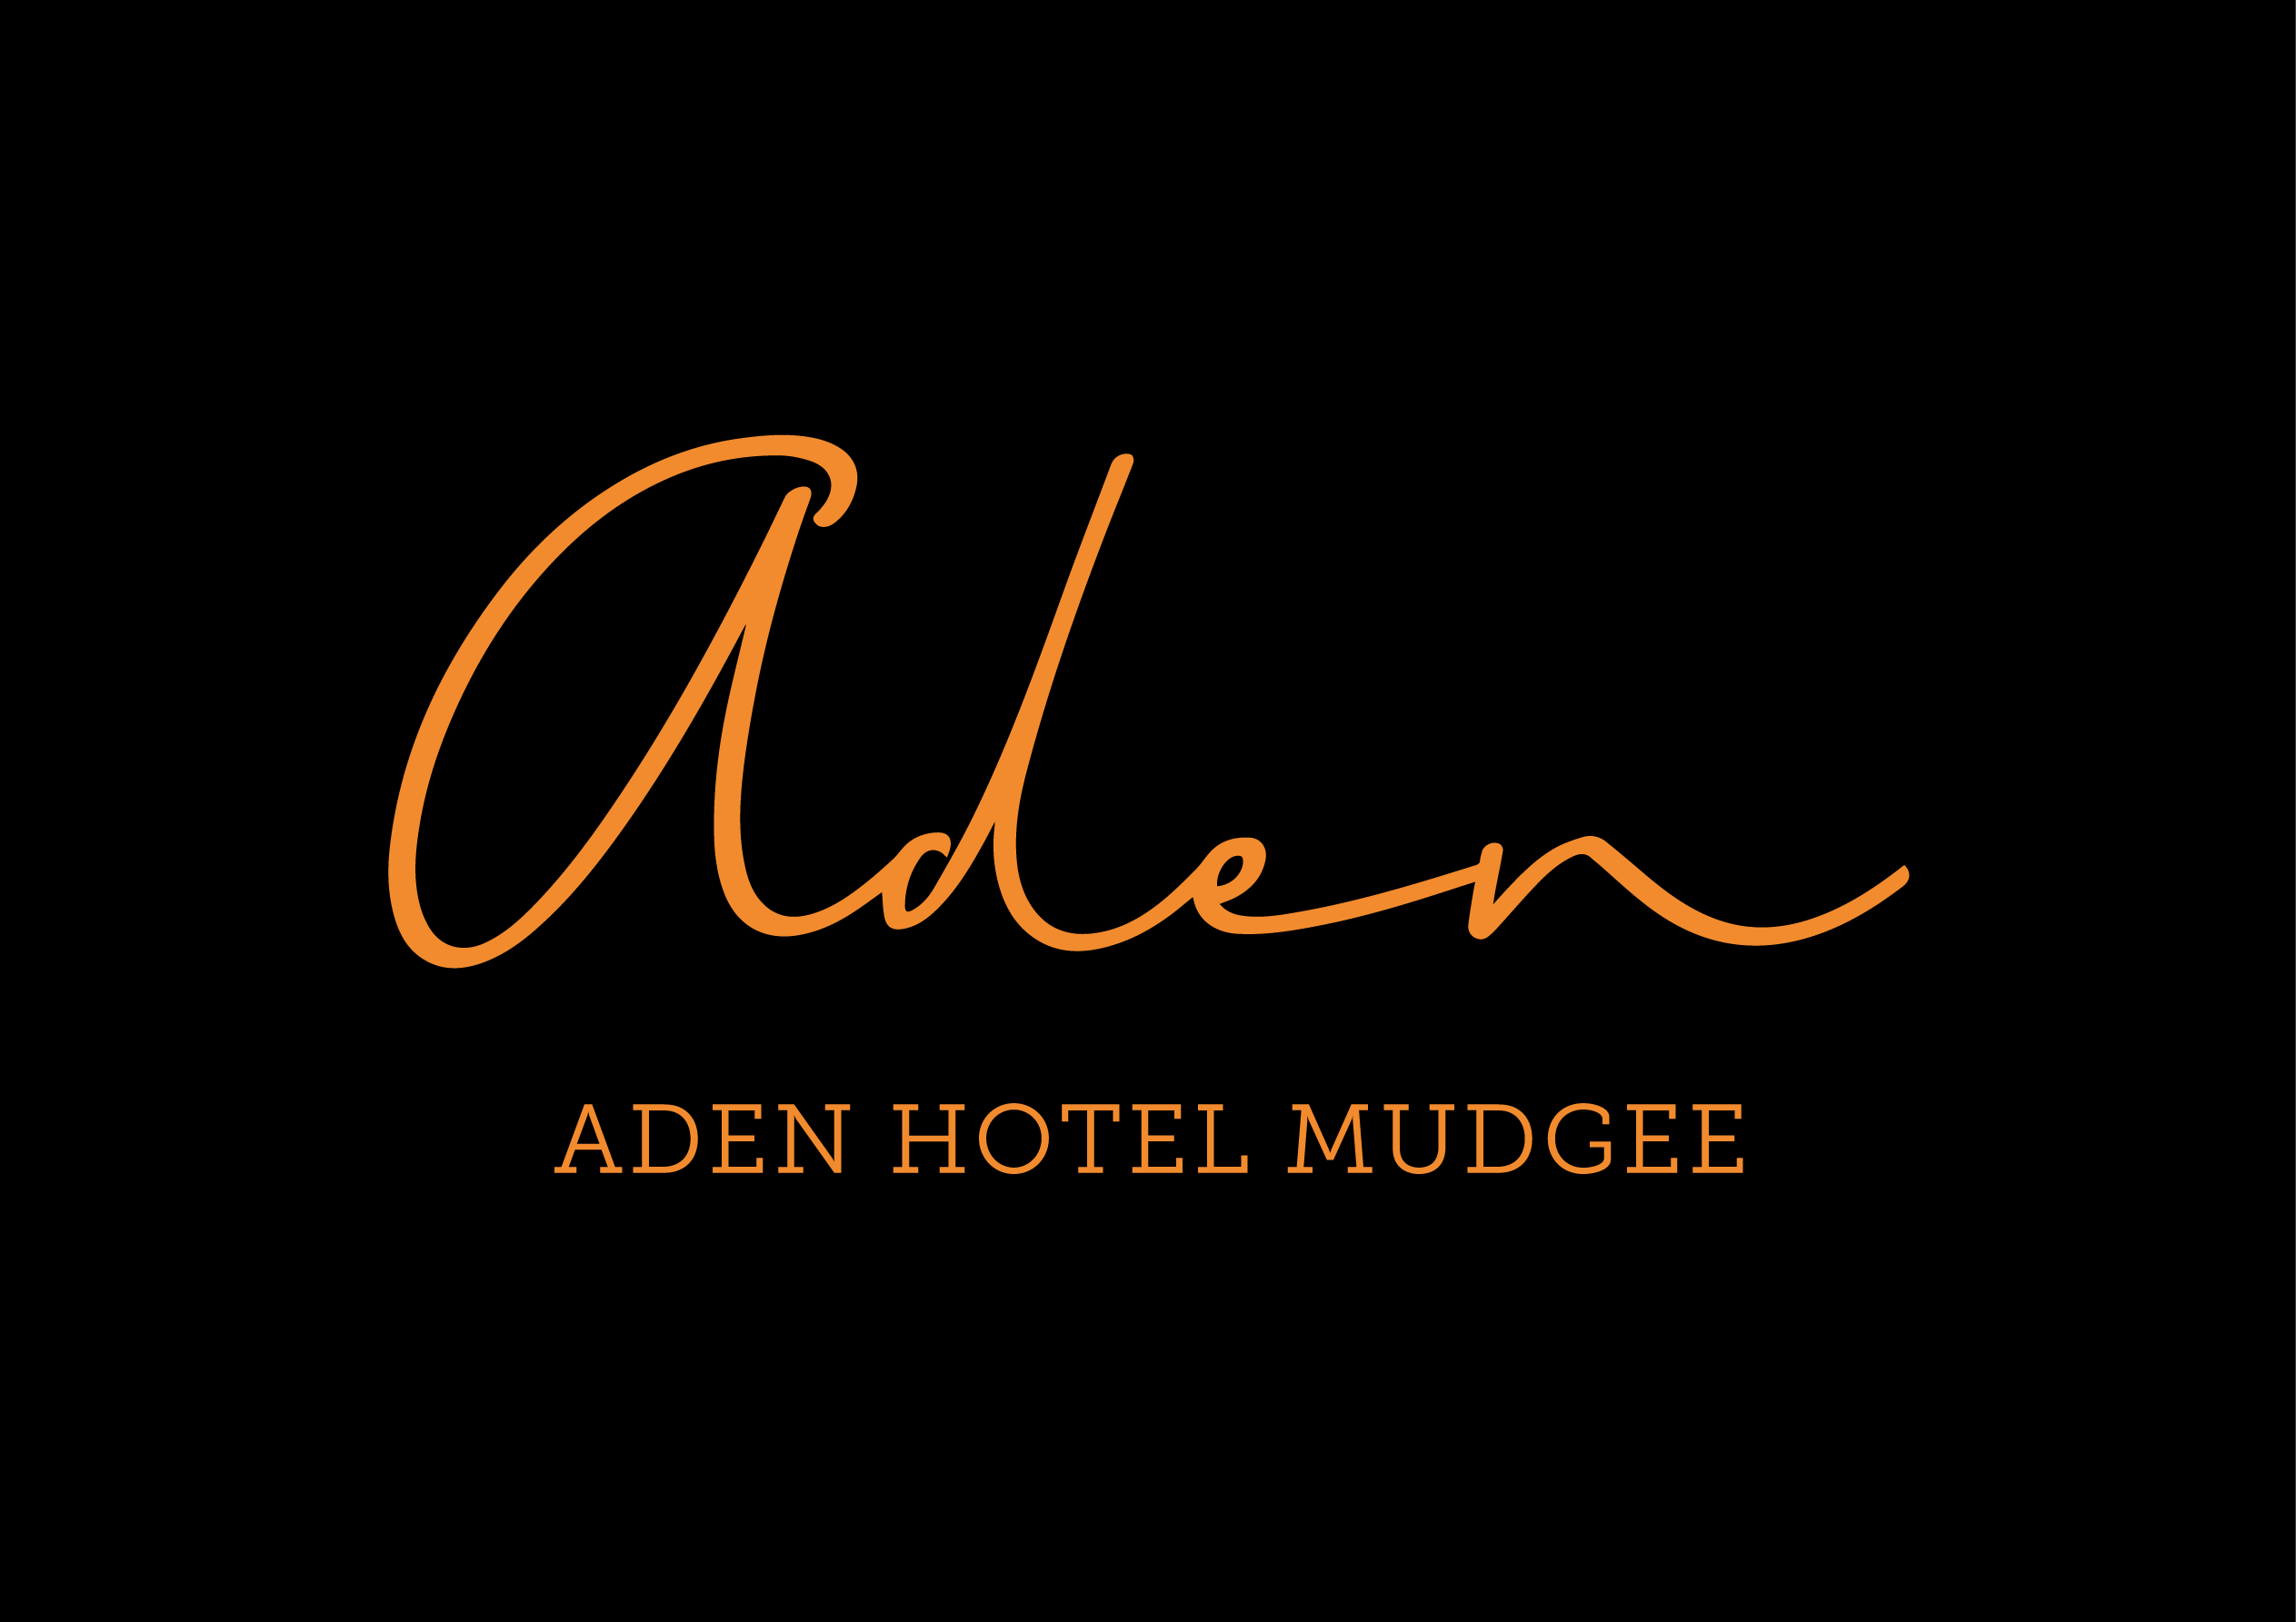 Comfort Inn Aden Hotel Mudgee - Geraldton Accommodation